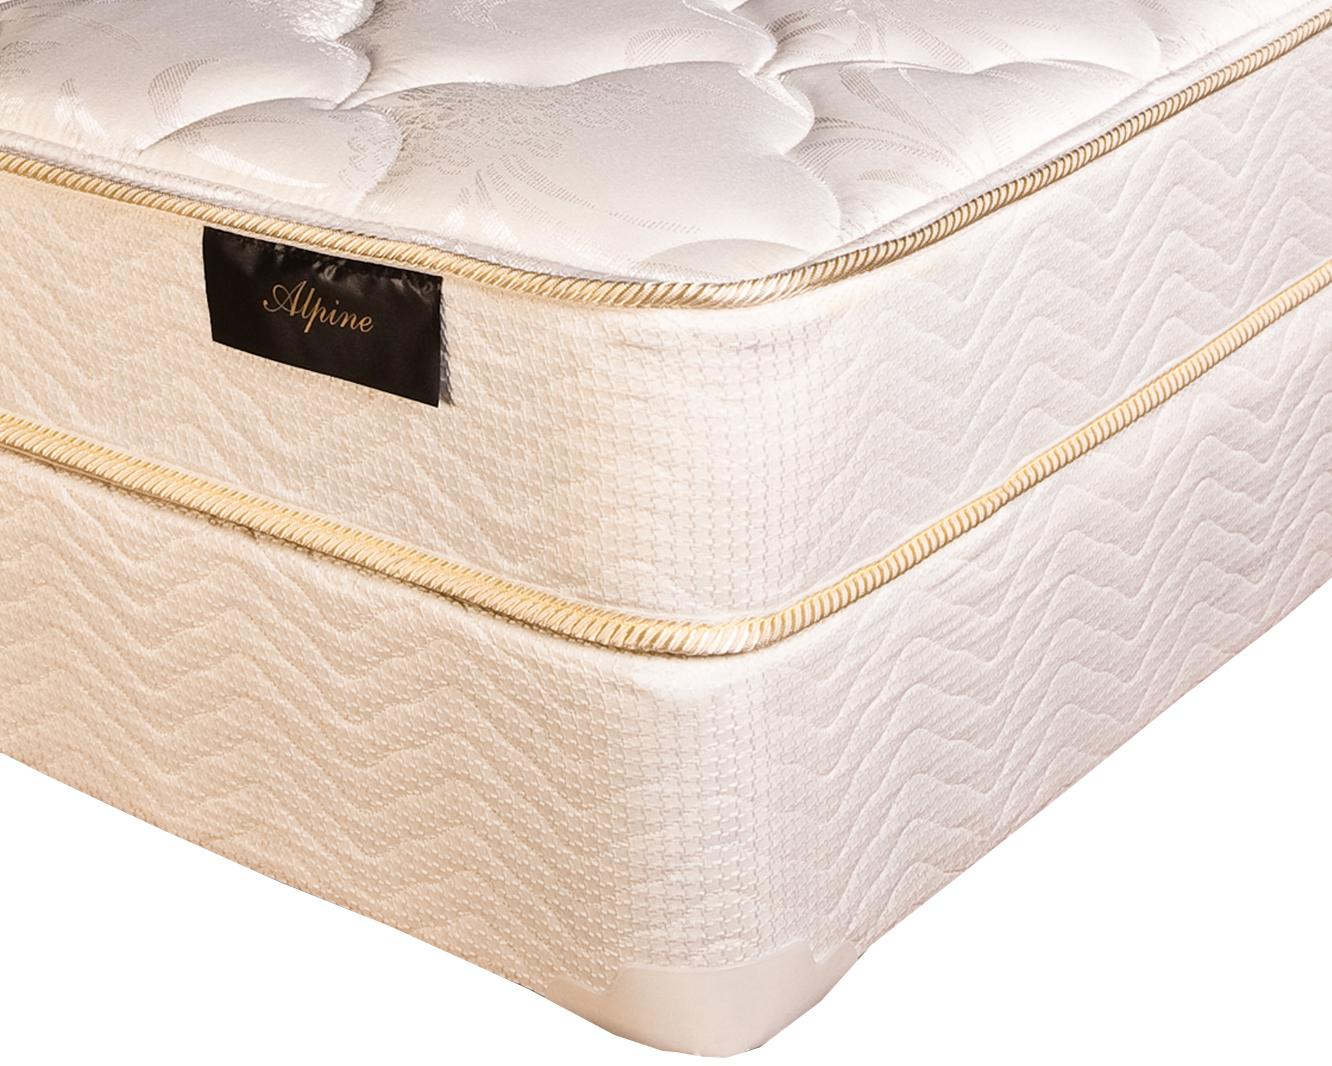 Southerland Queen Alpine Plush Mattress Set by Southerland Bedding Co. at Wilcox Furniture